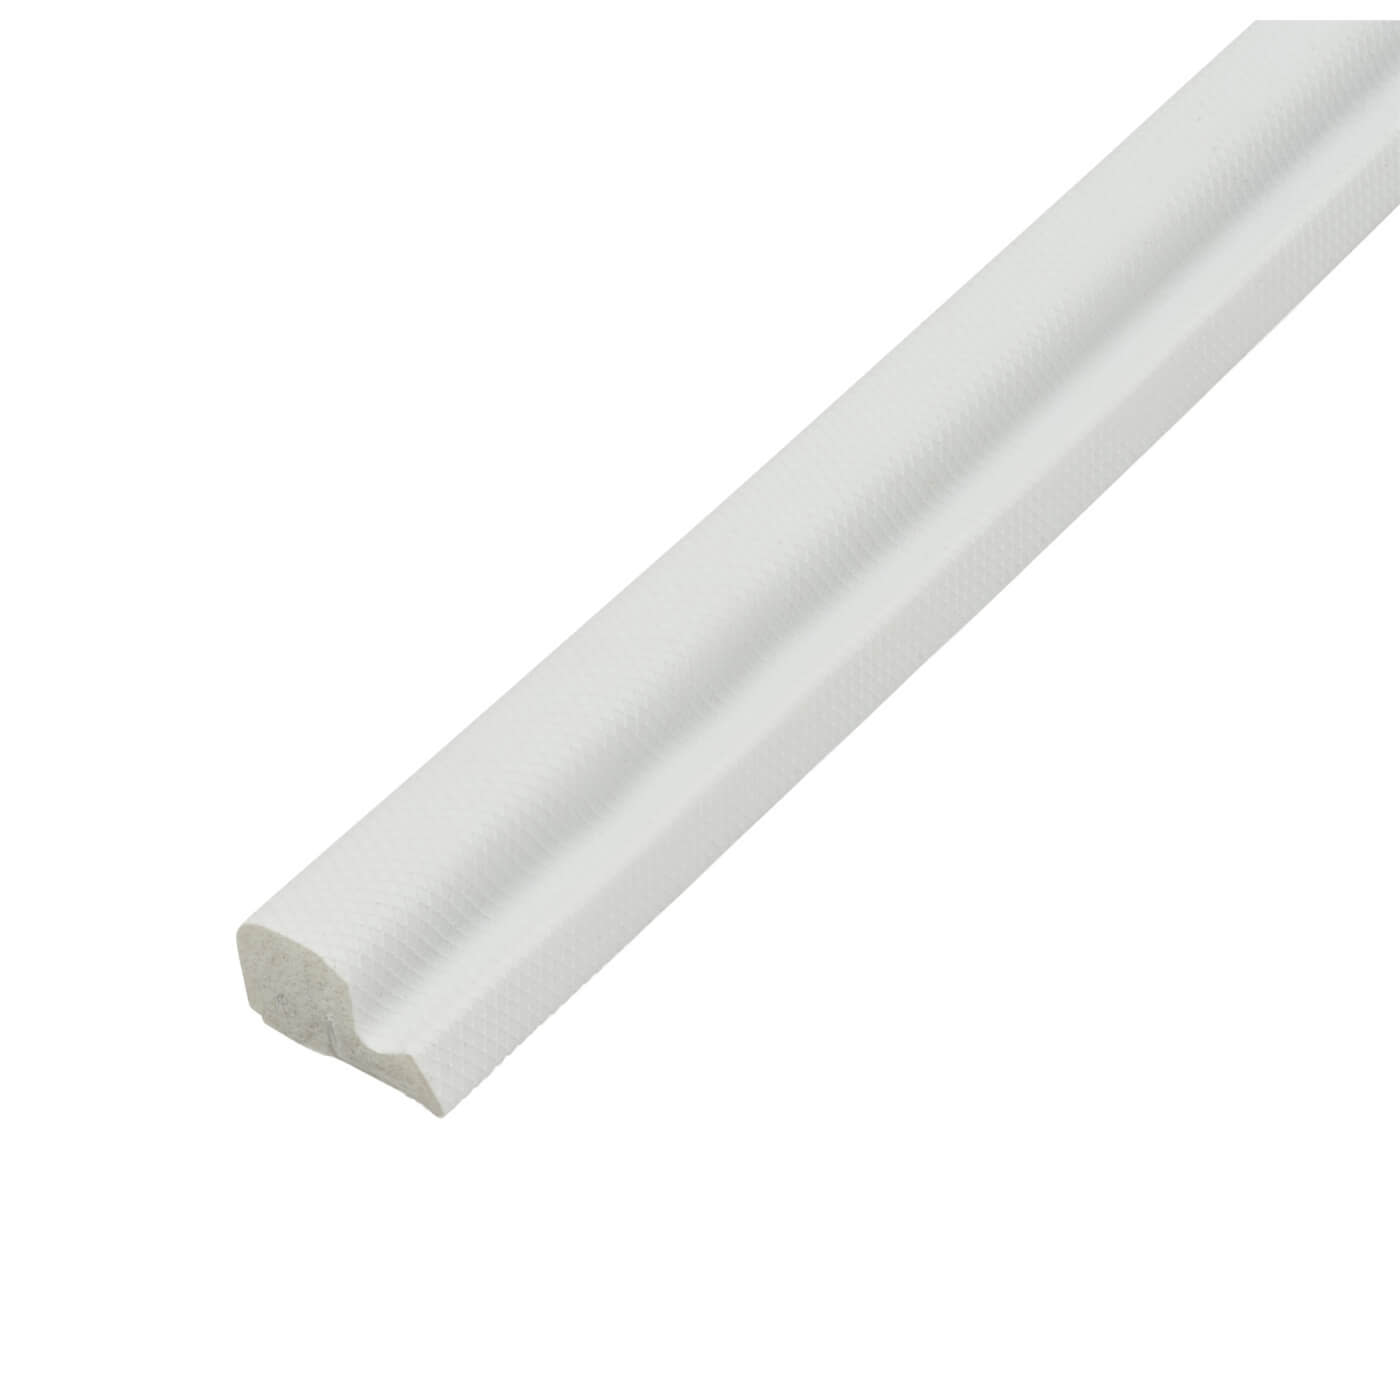 Exitex P6 Aquatex Seal - 300 metres - White)